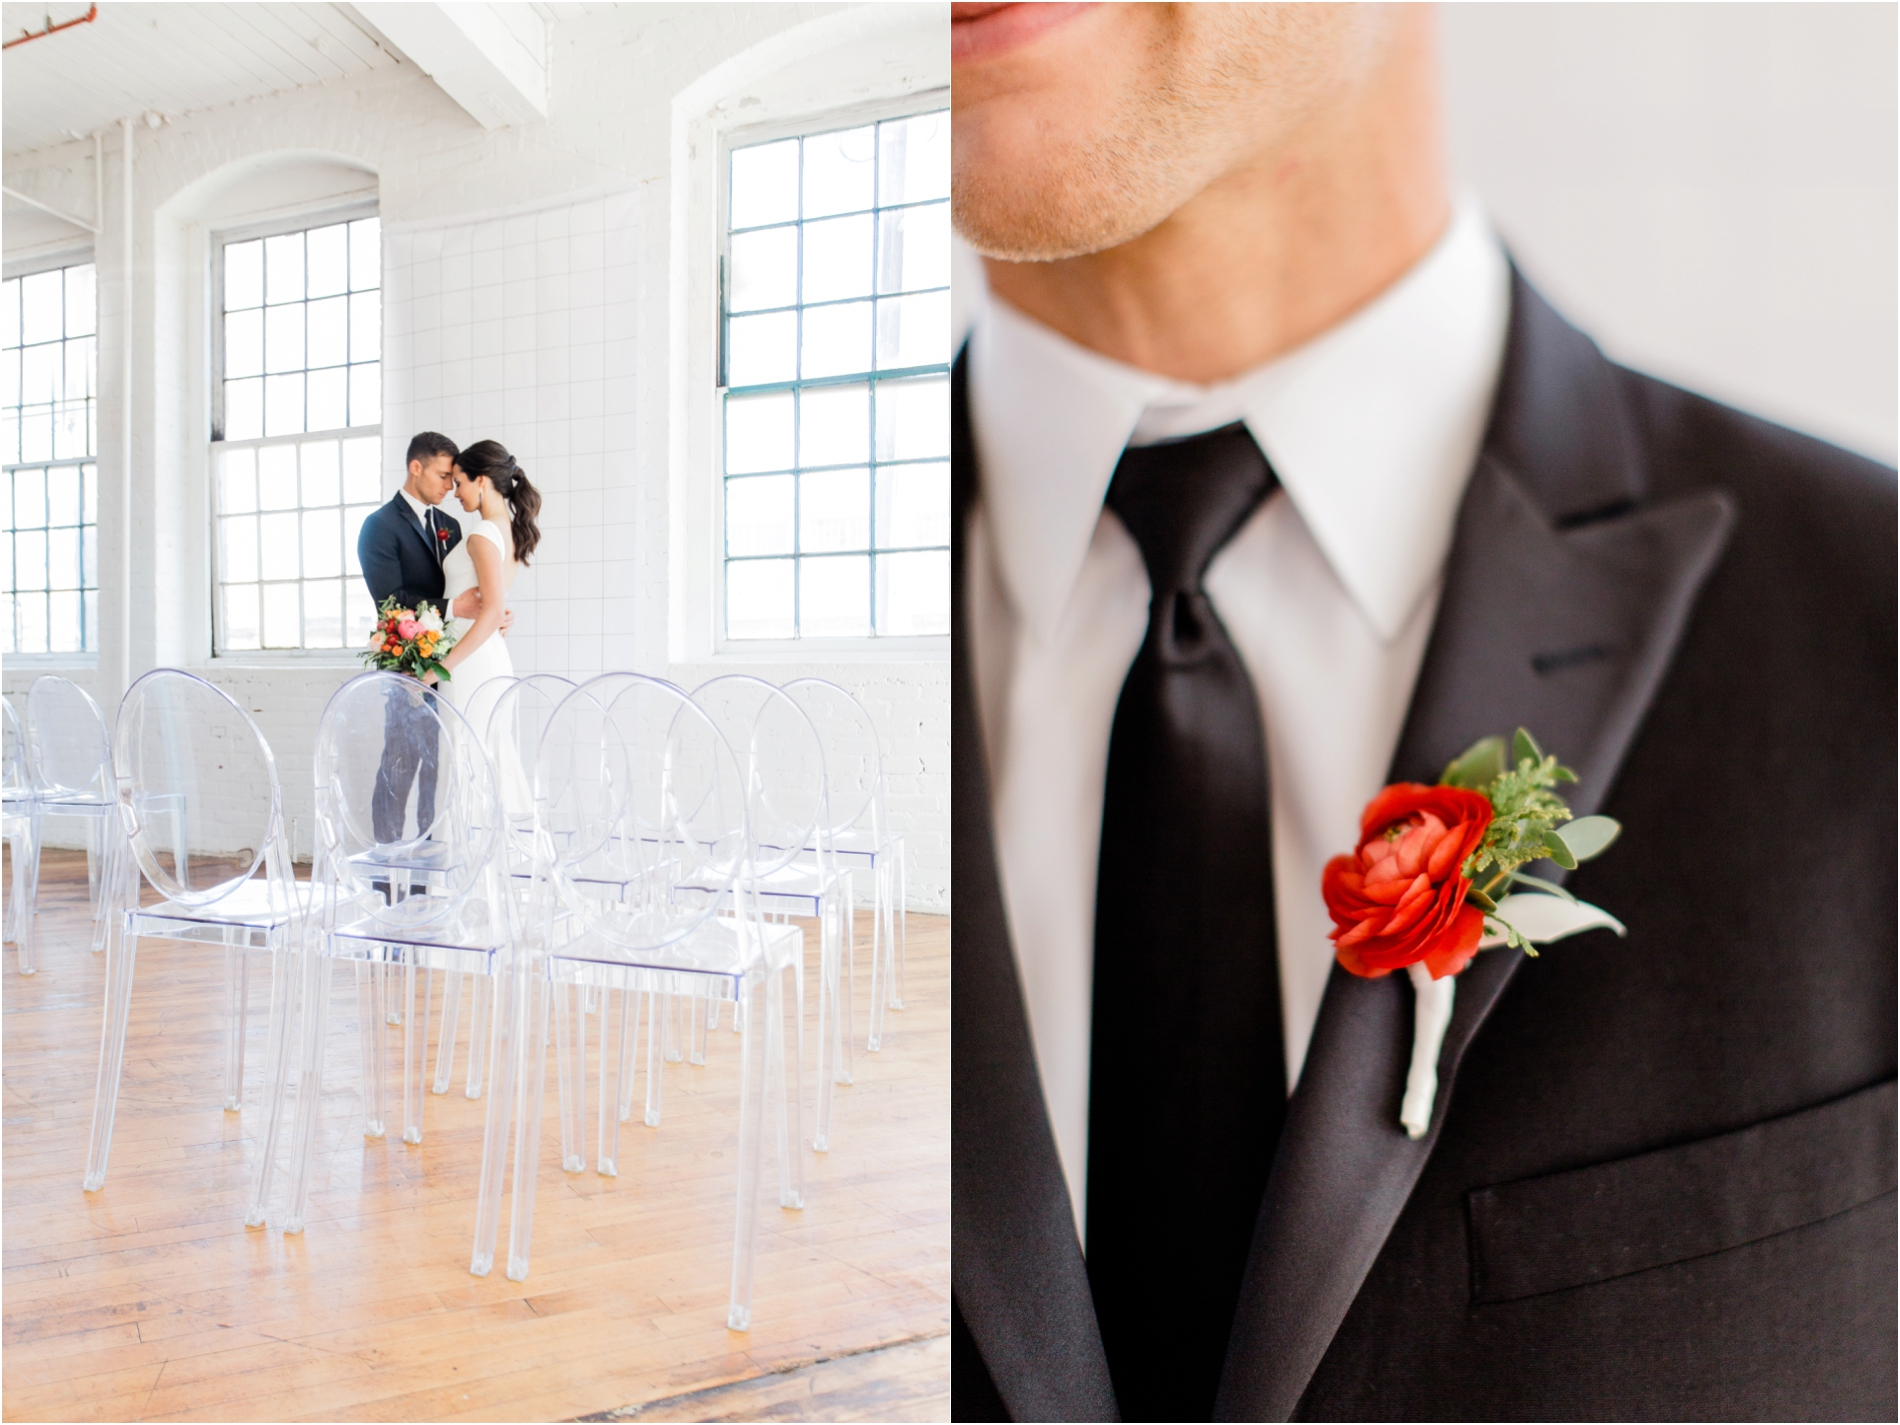 Grand Rapids, MI Minimalist Modern Wedding Ceremony